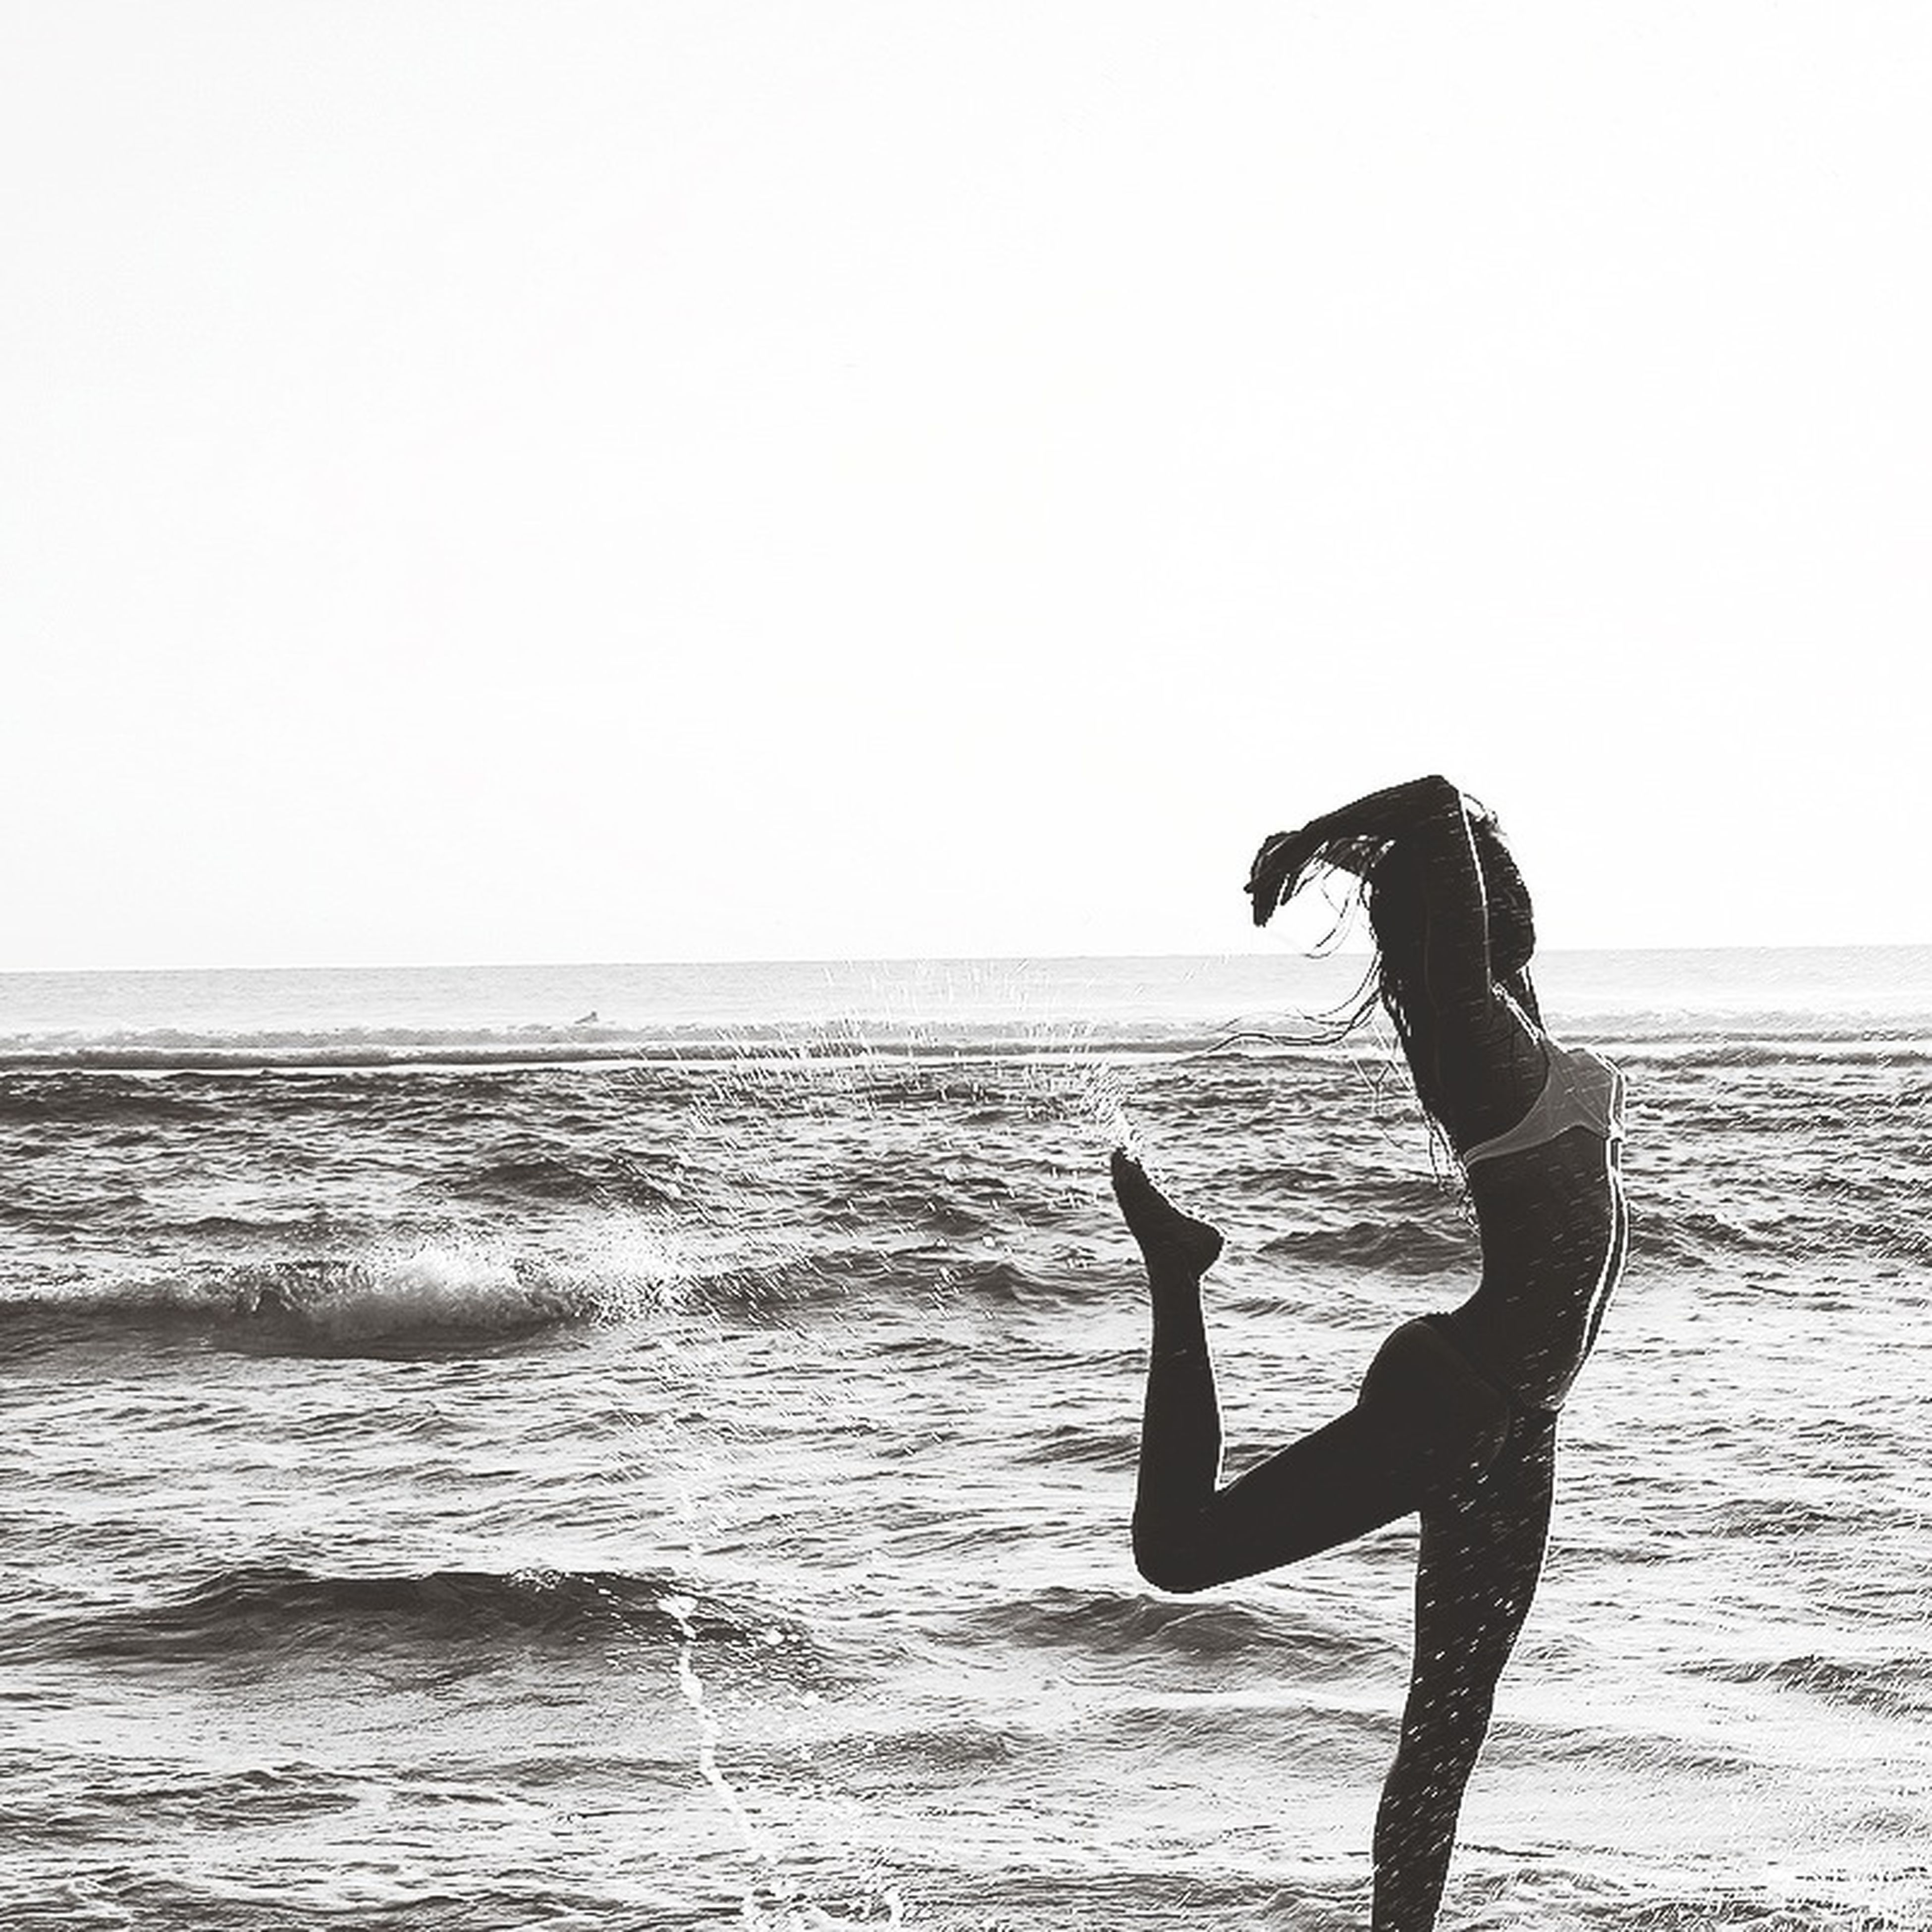 sea, horizon over water, water, clear sky, copy space, beach, leisure activity, lifestyles, full length, shore, standing, scenics, tranquil scene, silhouette, tranquility, beauty in nature, nature, wave